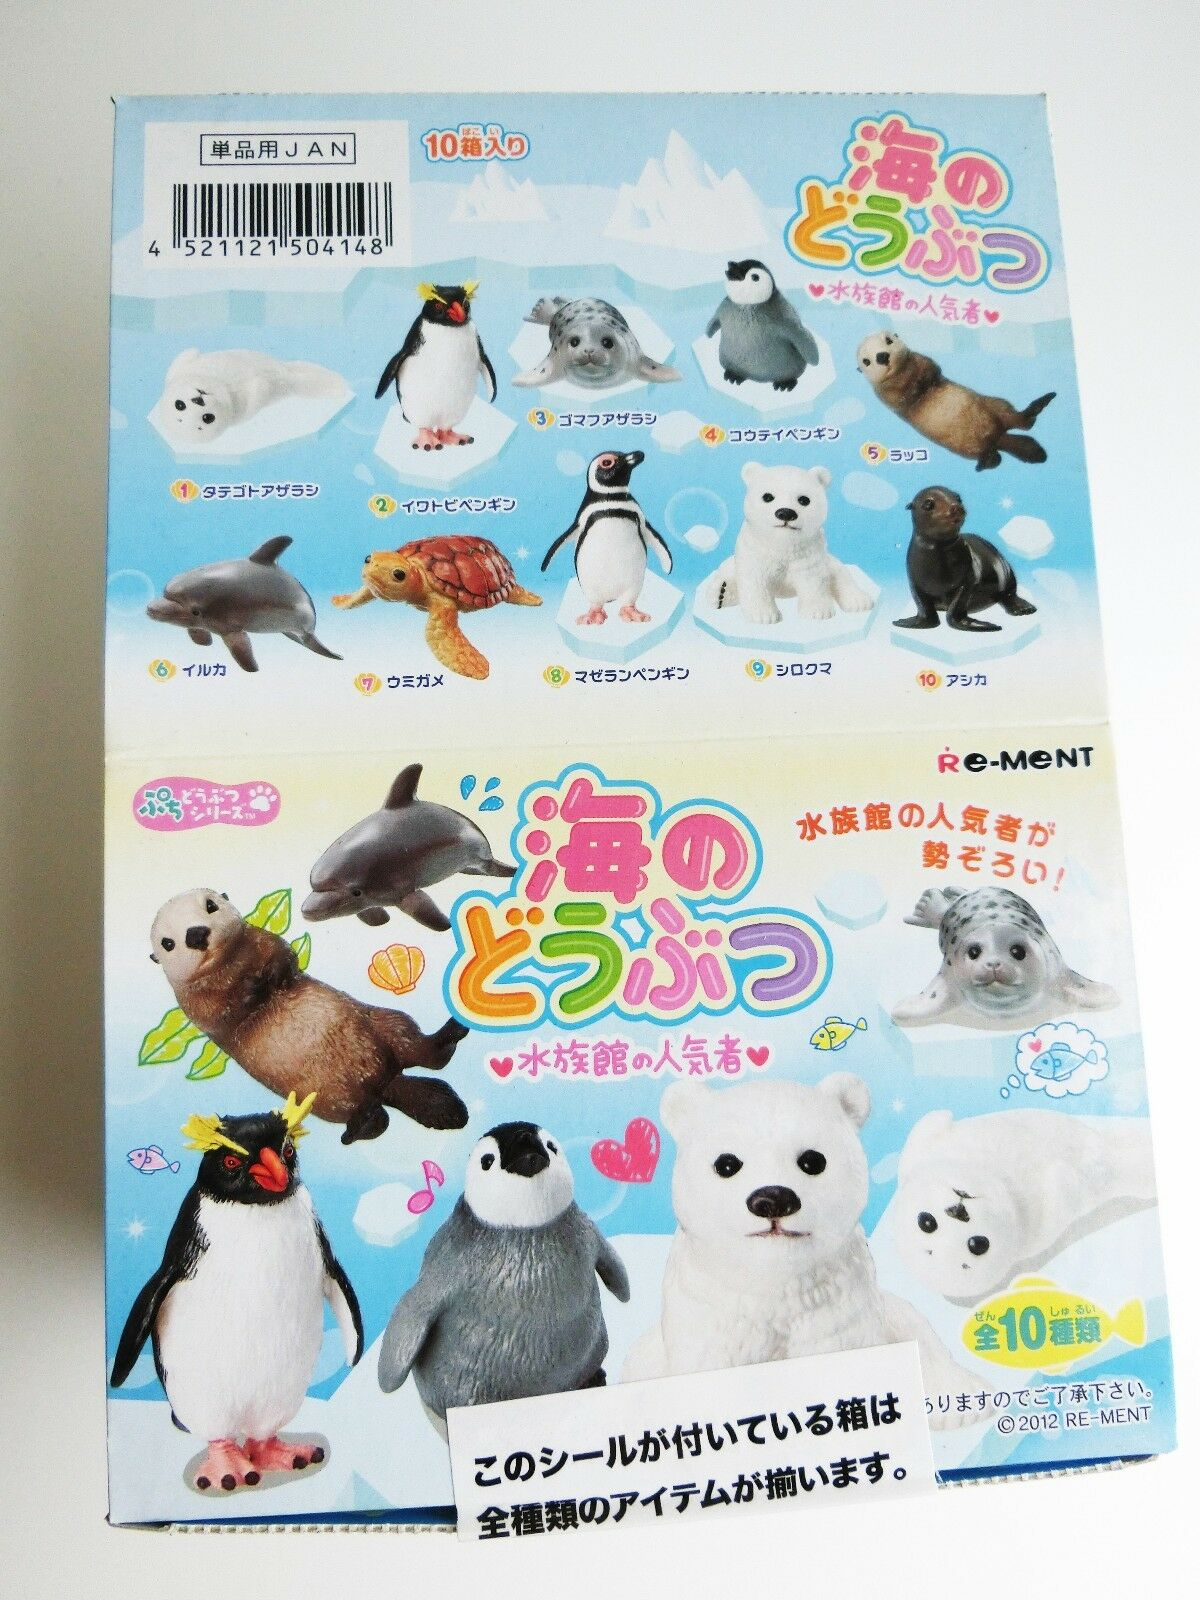 2012 Re-Ment Petit Animal series Sea animal All 10 Complete set Re ment Japan